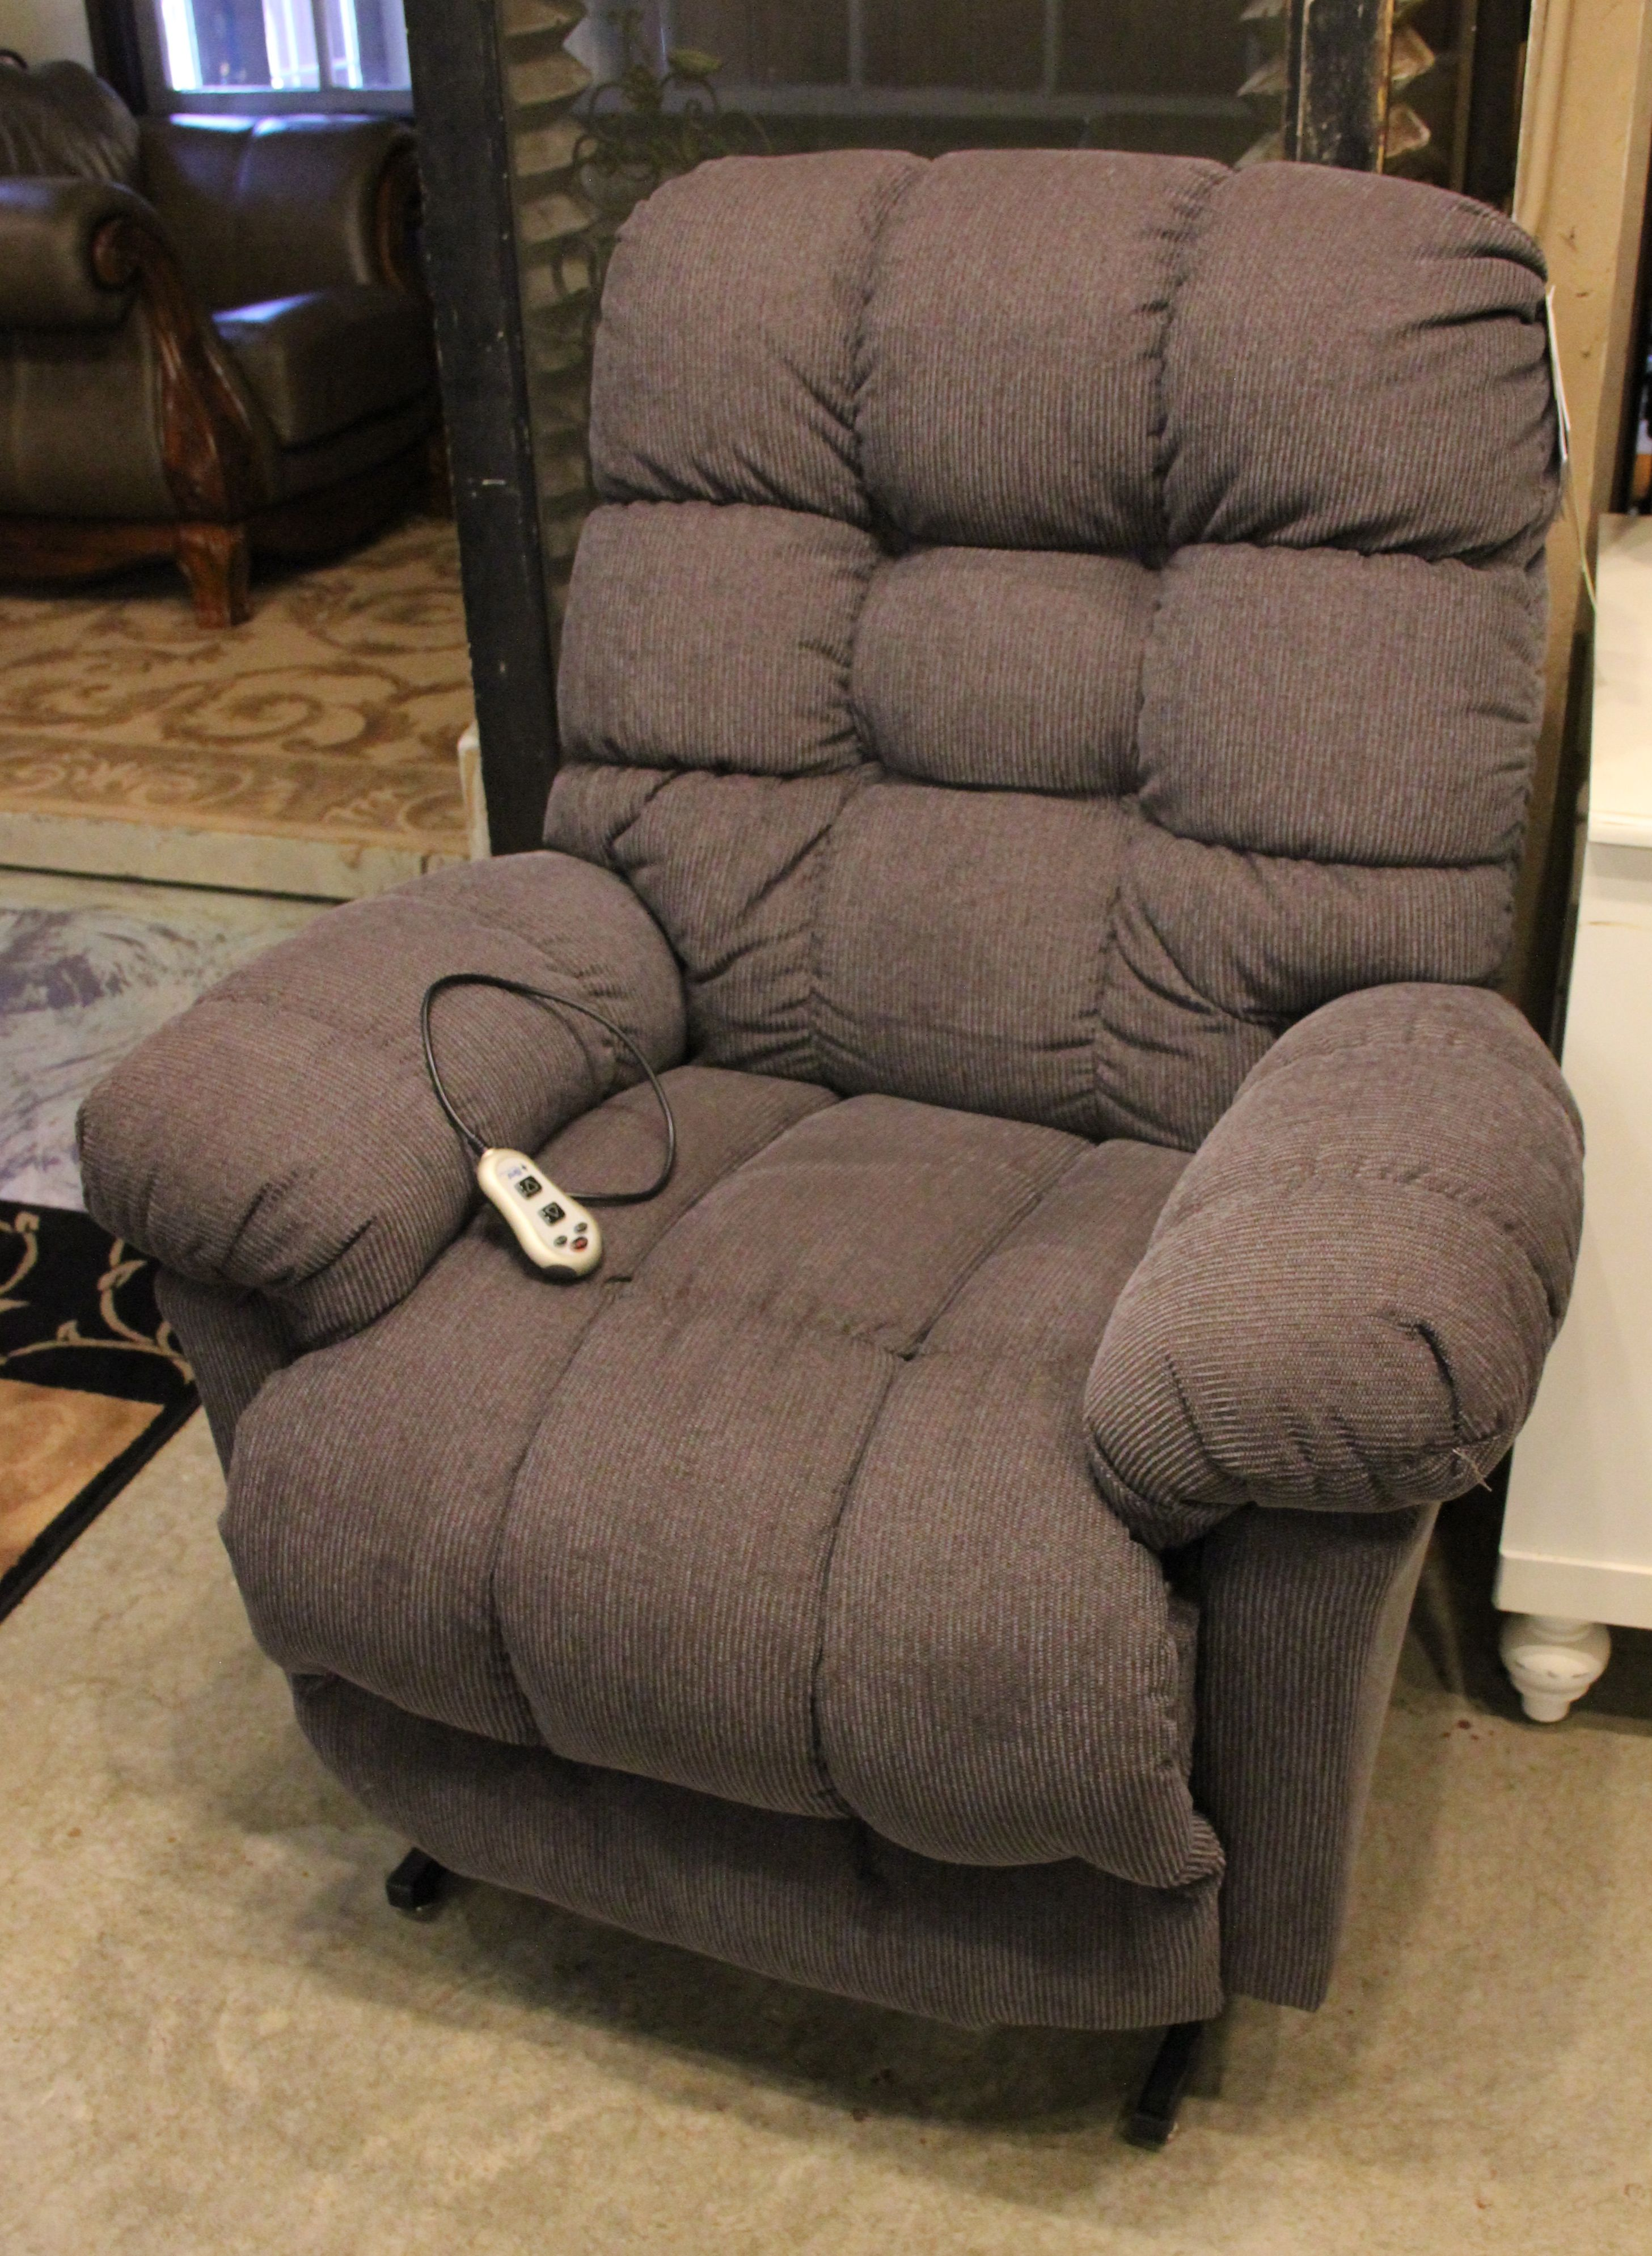 Outstanding Power Lift Recliner With Massage Southern Made By Best Theyellowbook Wood Chair Design Ideas Theyellowbookinfo